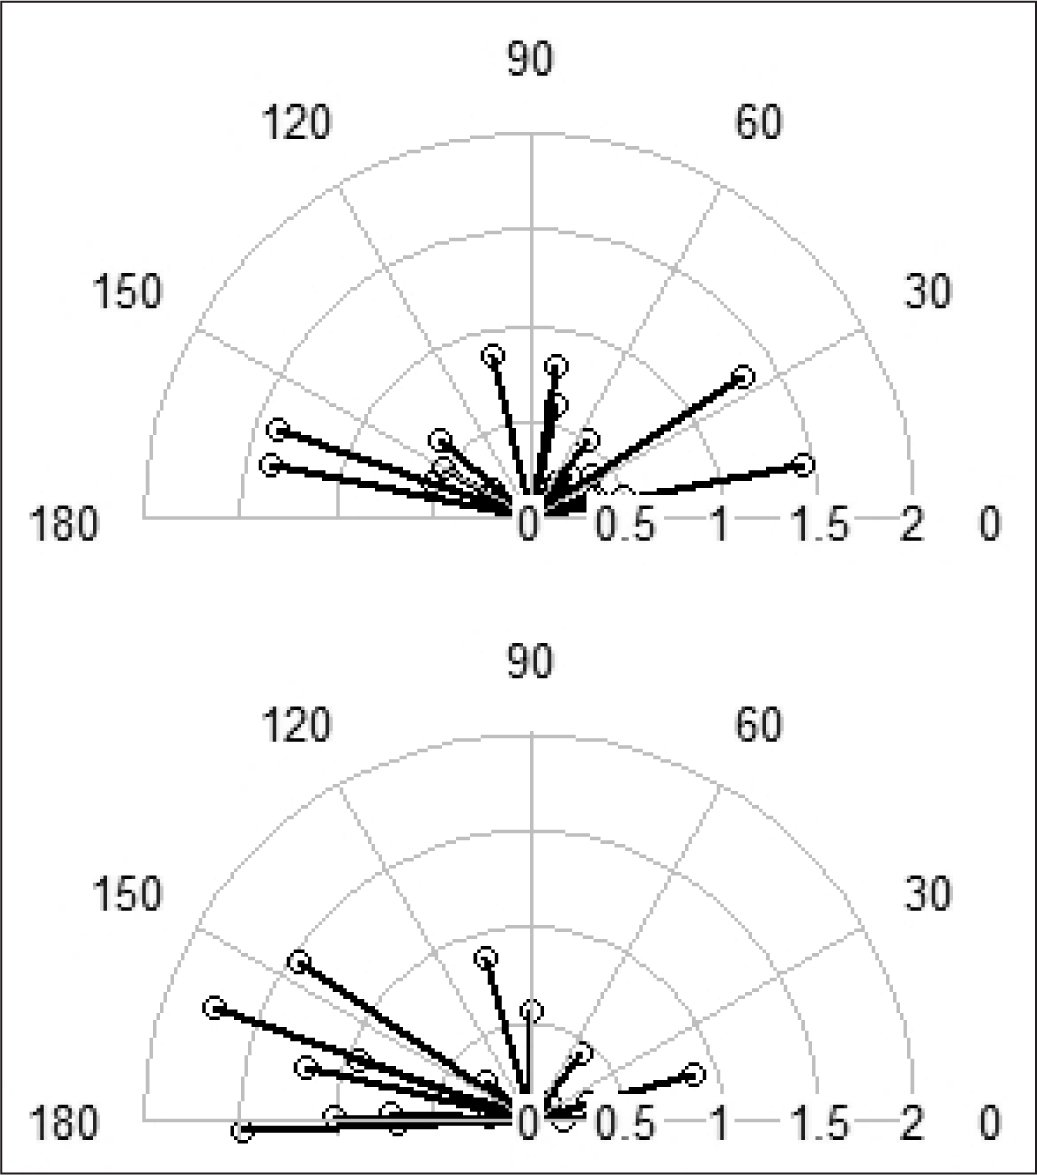 Individual vectors in vector analysis of surgically induced astigmatism for the femtosecond laser clear corneal incision group (upper panel) and for the manual clear corneal incision group (lower panel).